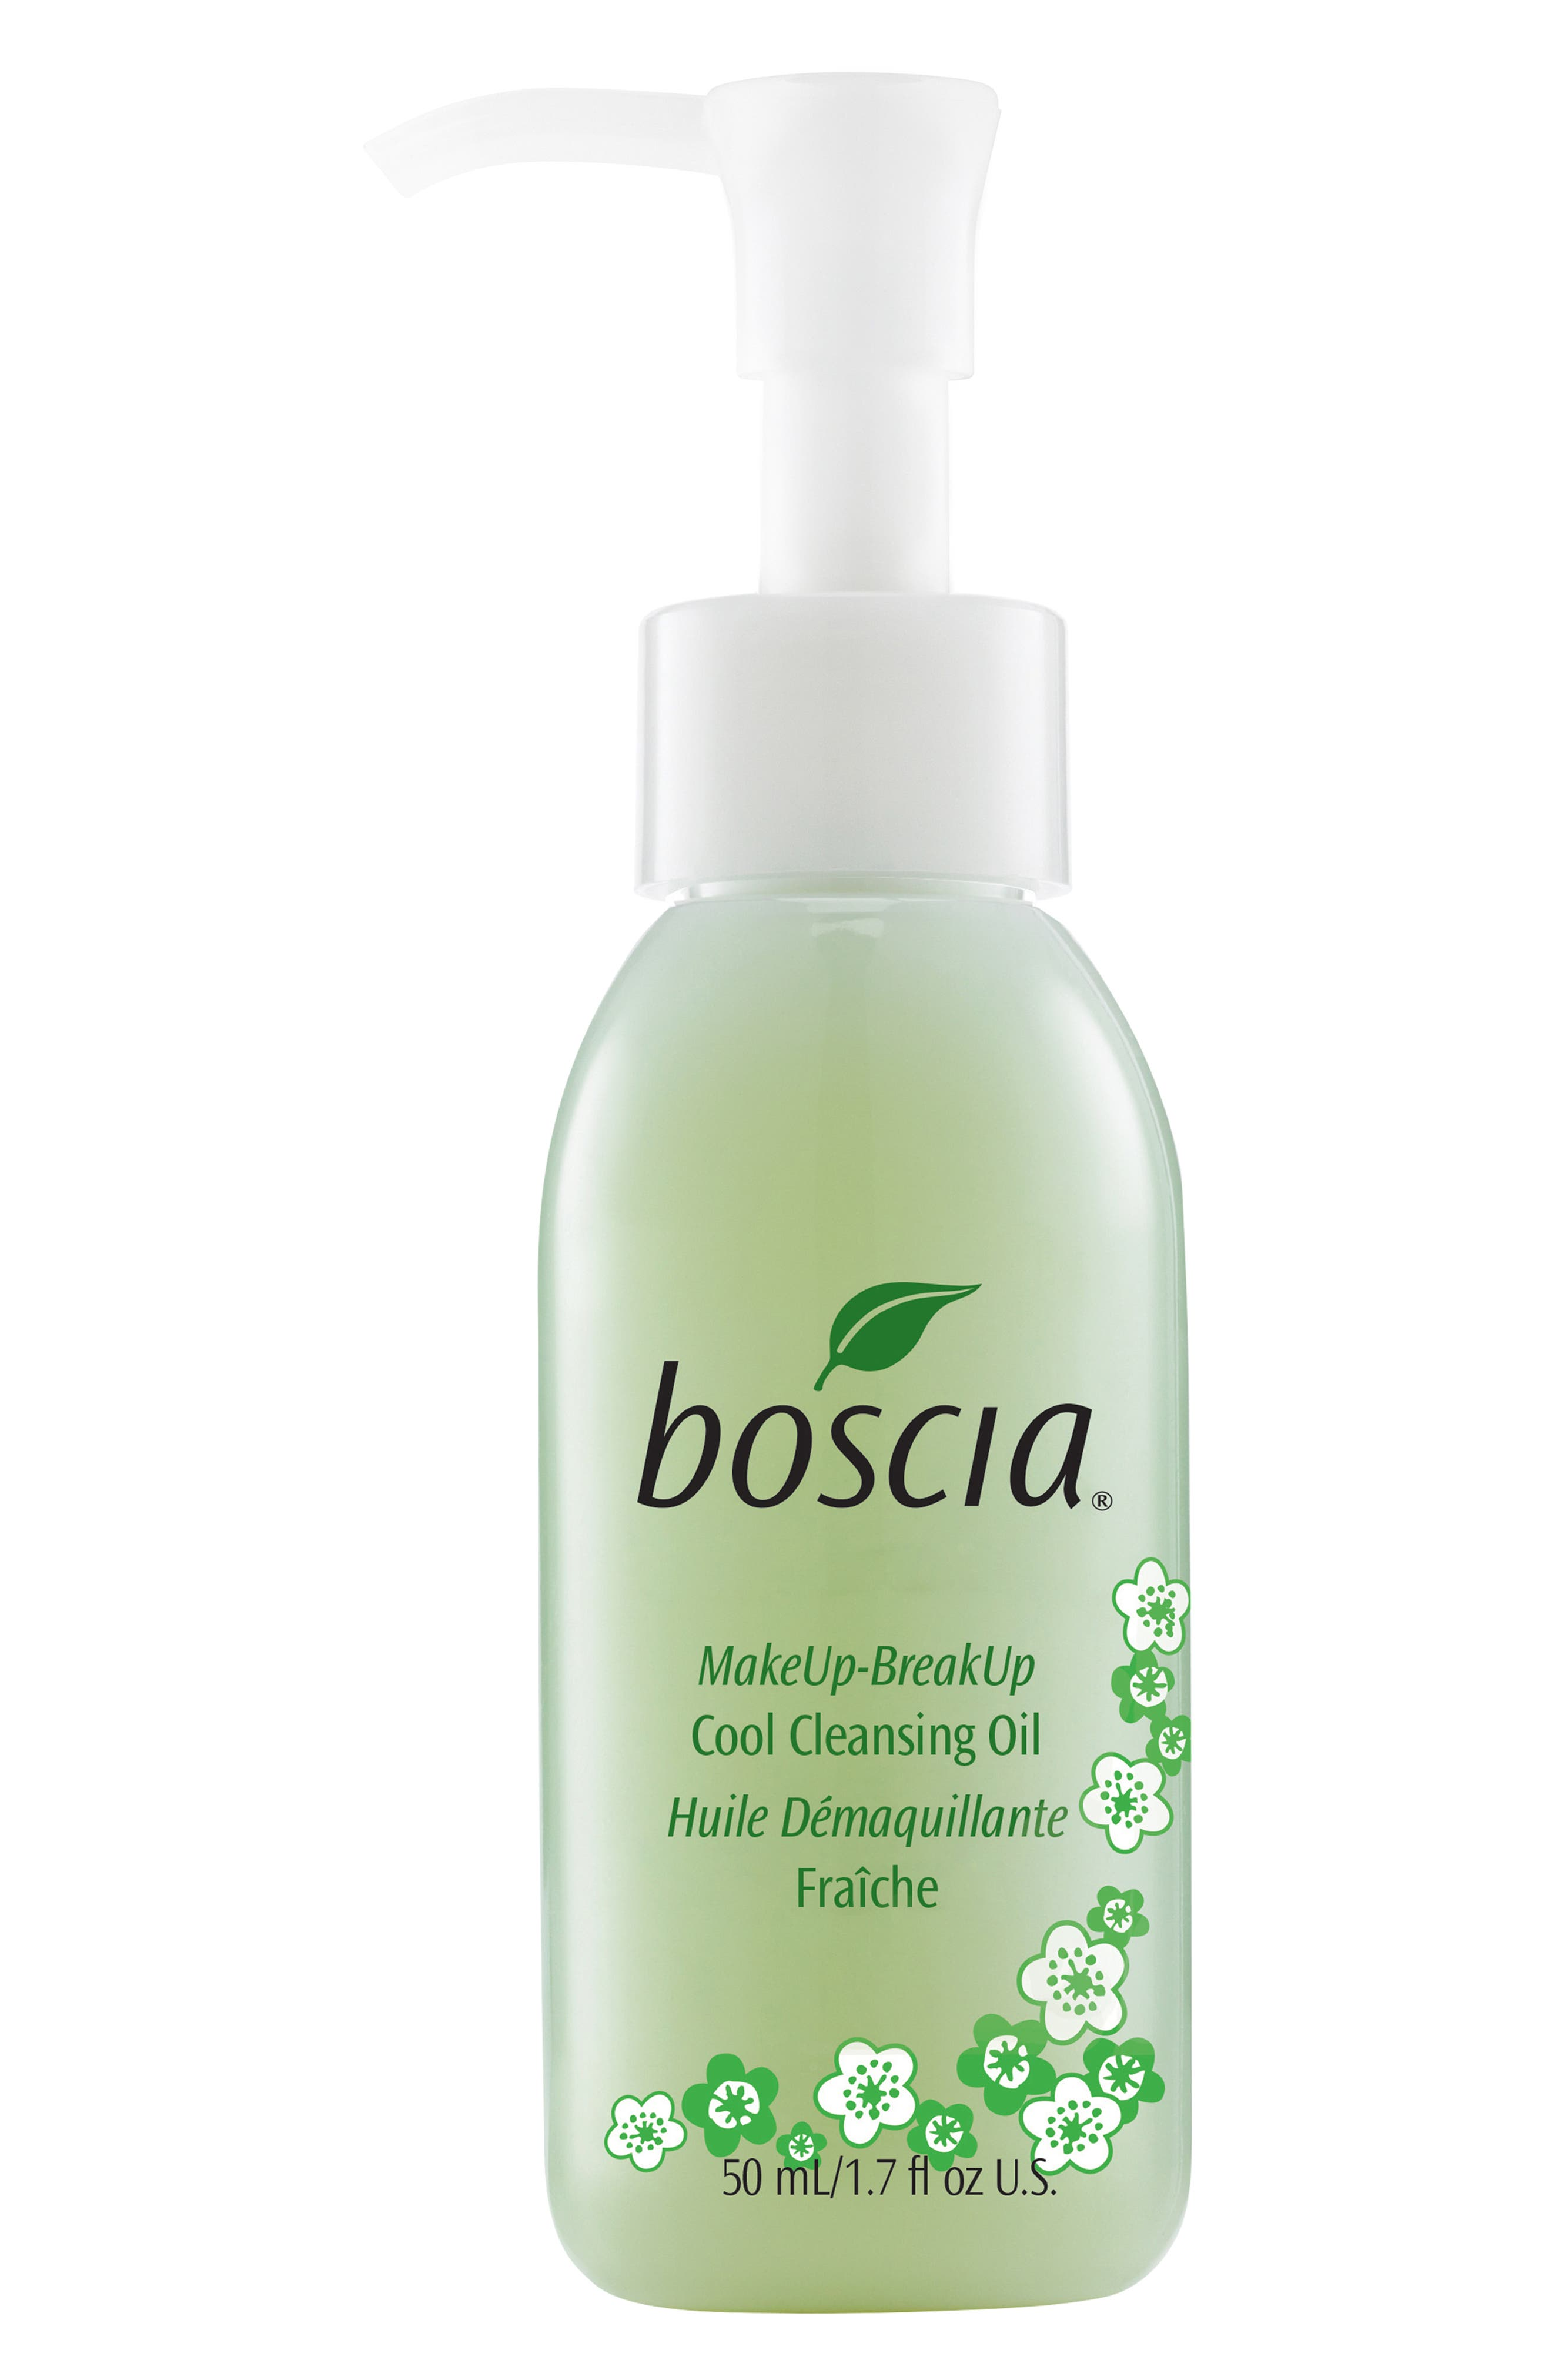 BOSCIA, MakeUp-BreakUp Cool Cleansing Oil, Alternate thumbnail 3, color, NO COLOR